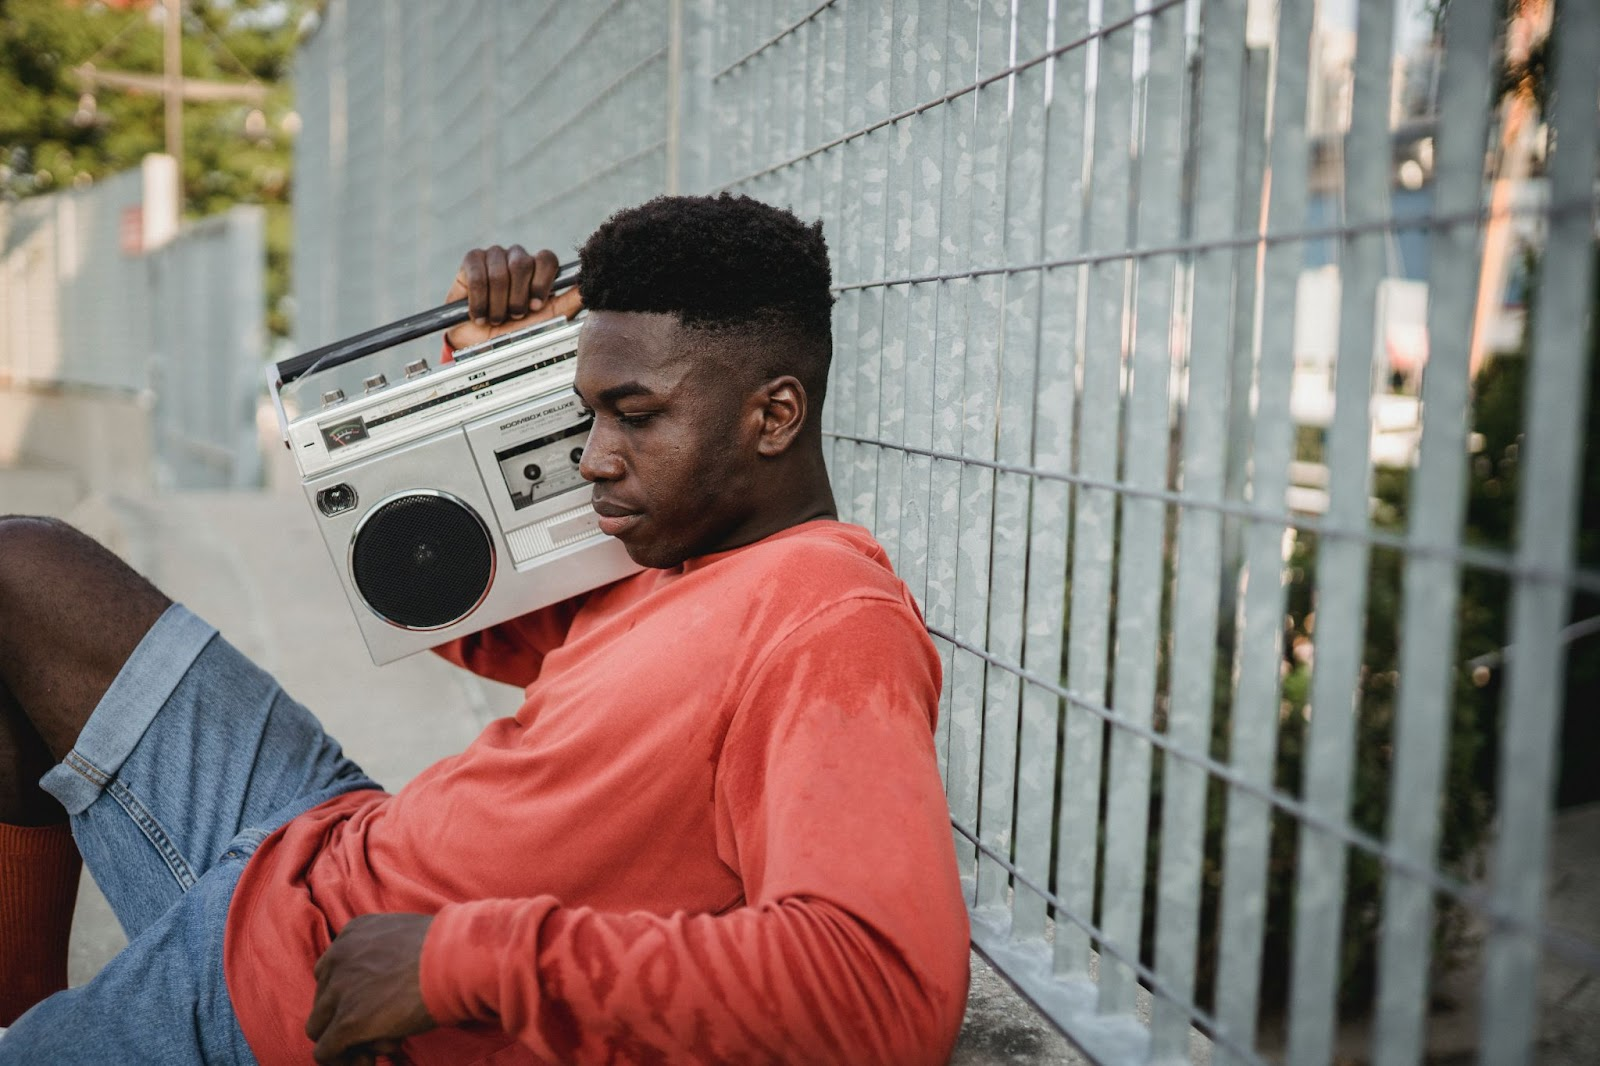 A man wearing a read t-shirt and blue jeans listening something on a vintage radio -How to Get Your Music on Radio